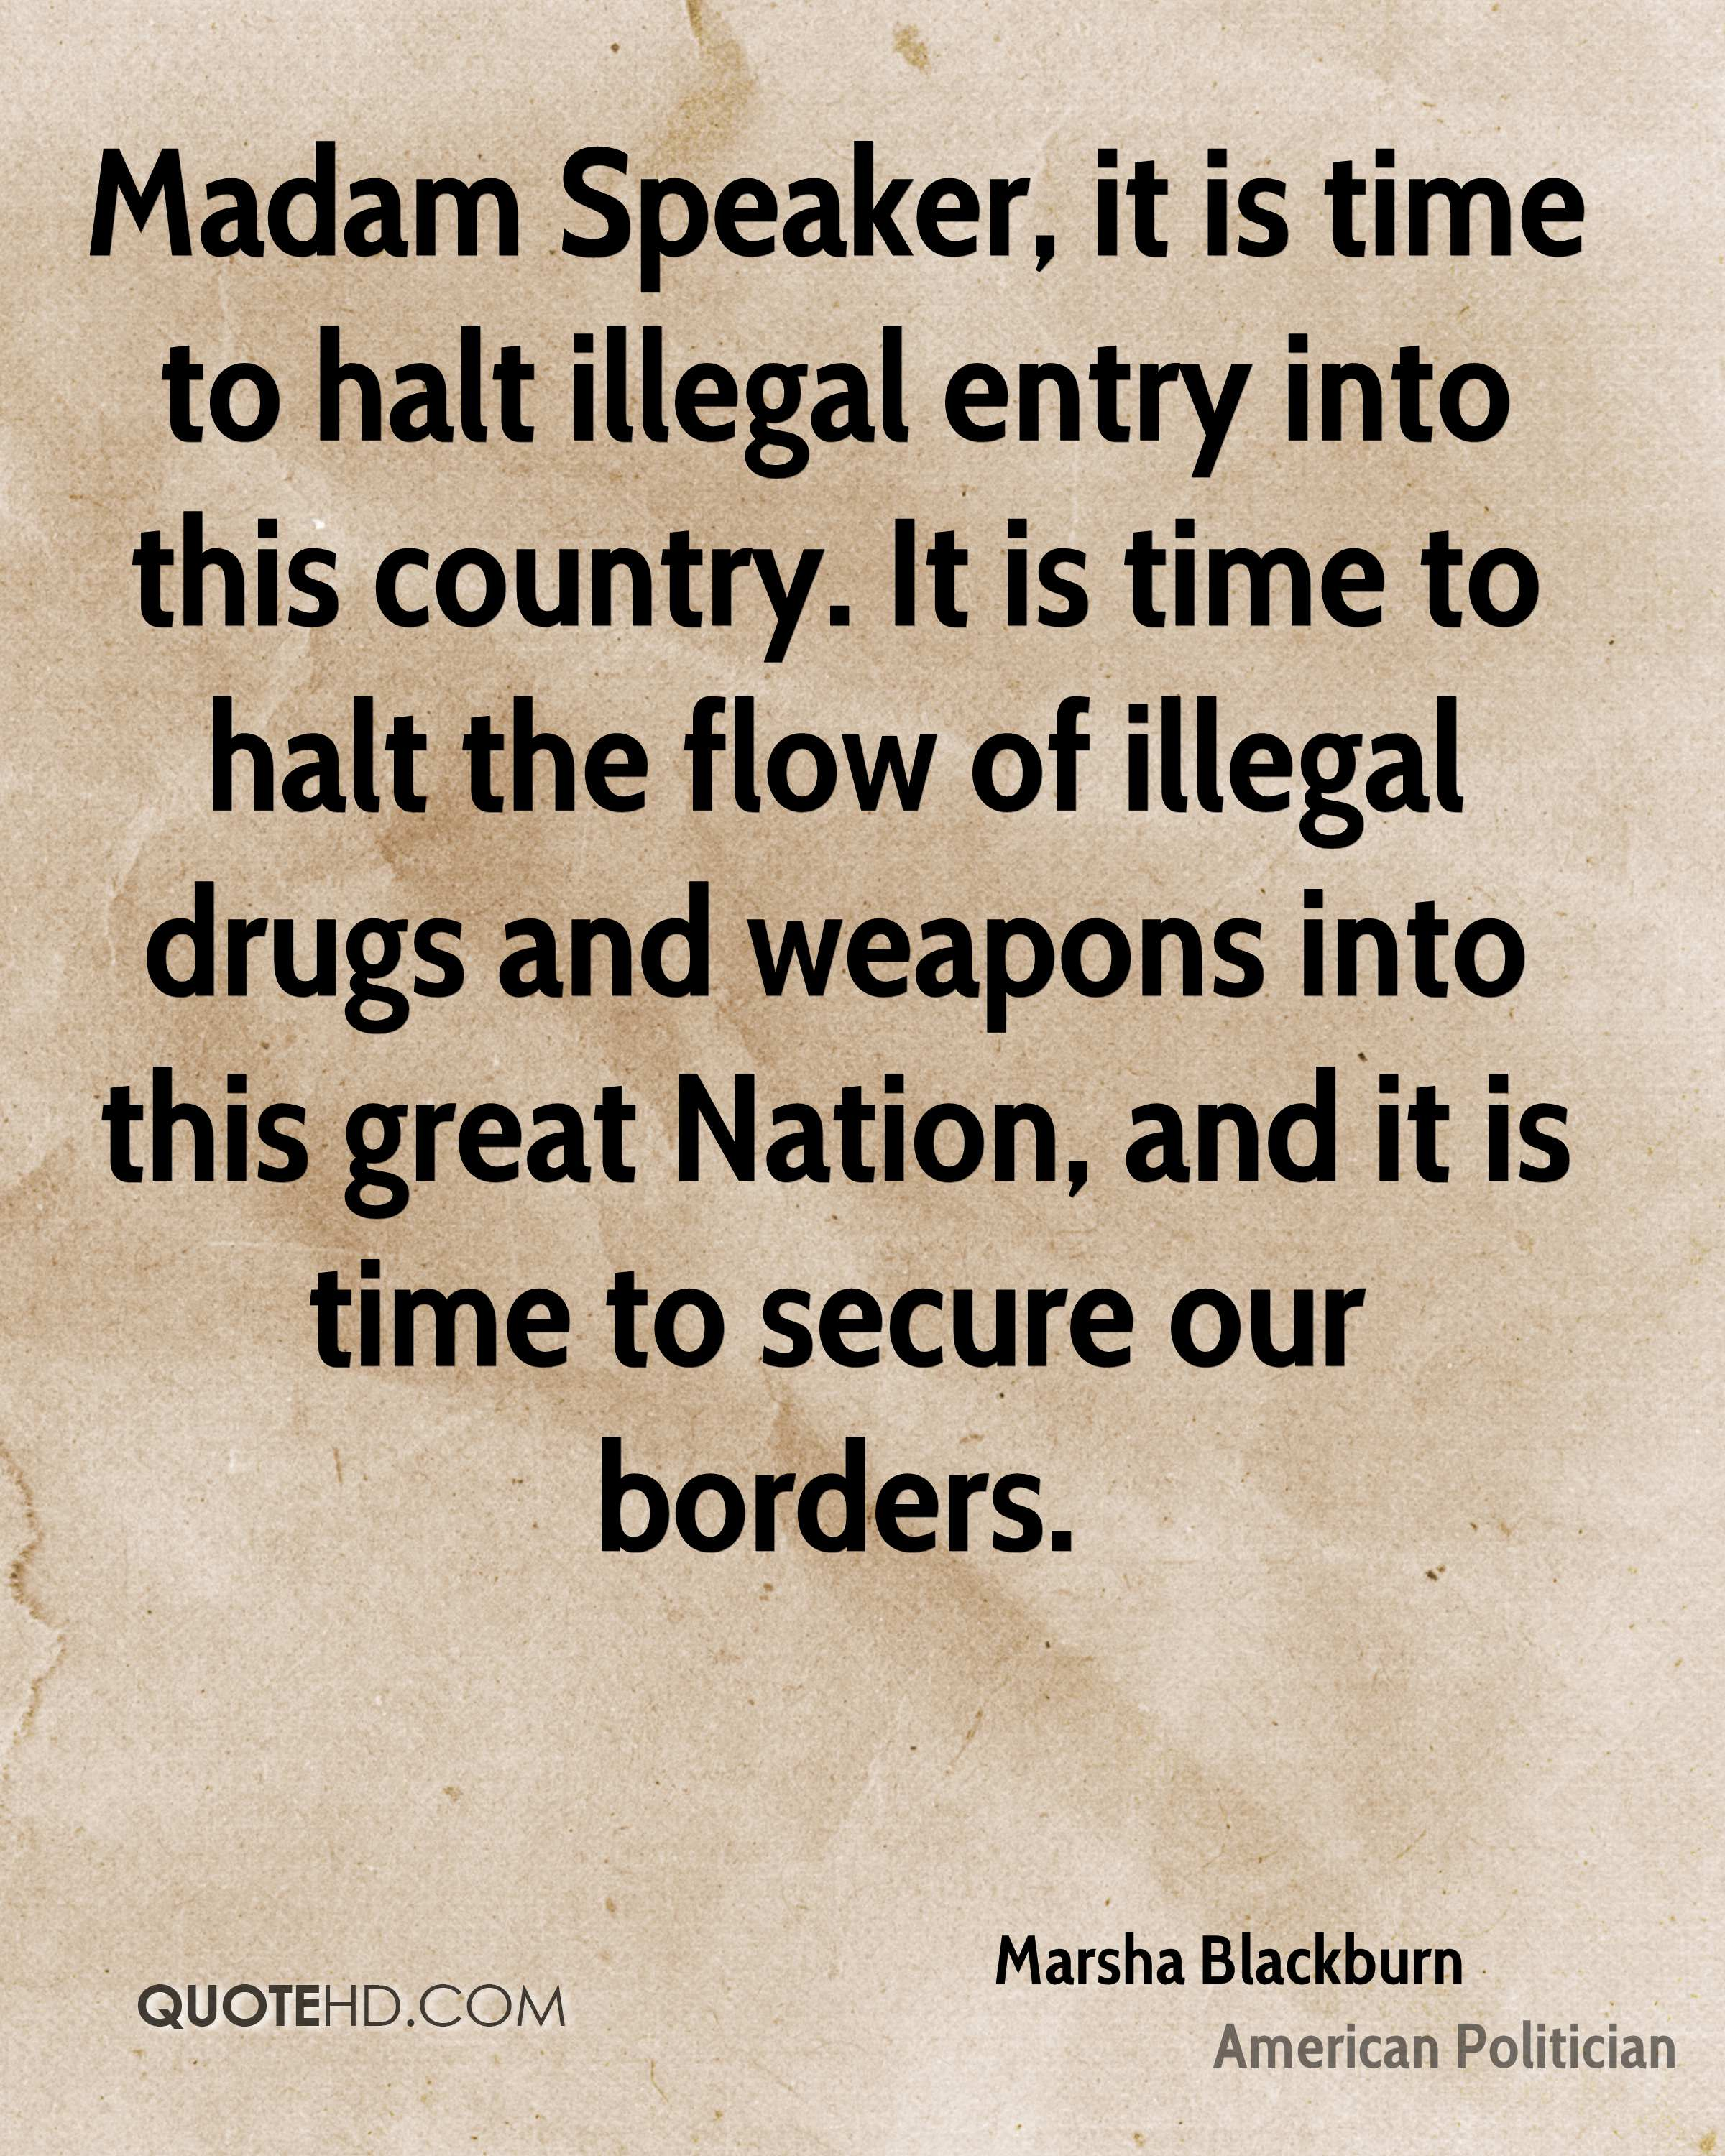 Madam Speaker, it is time to halt illegal entry into this country. It is time to halt the flow of illegal drugs and weapons into this great Nation, and it is time to secure our borders.